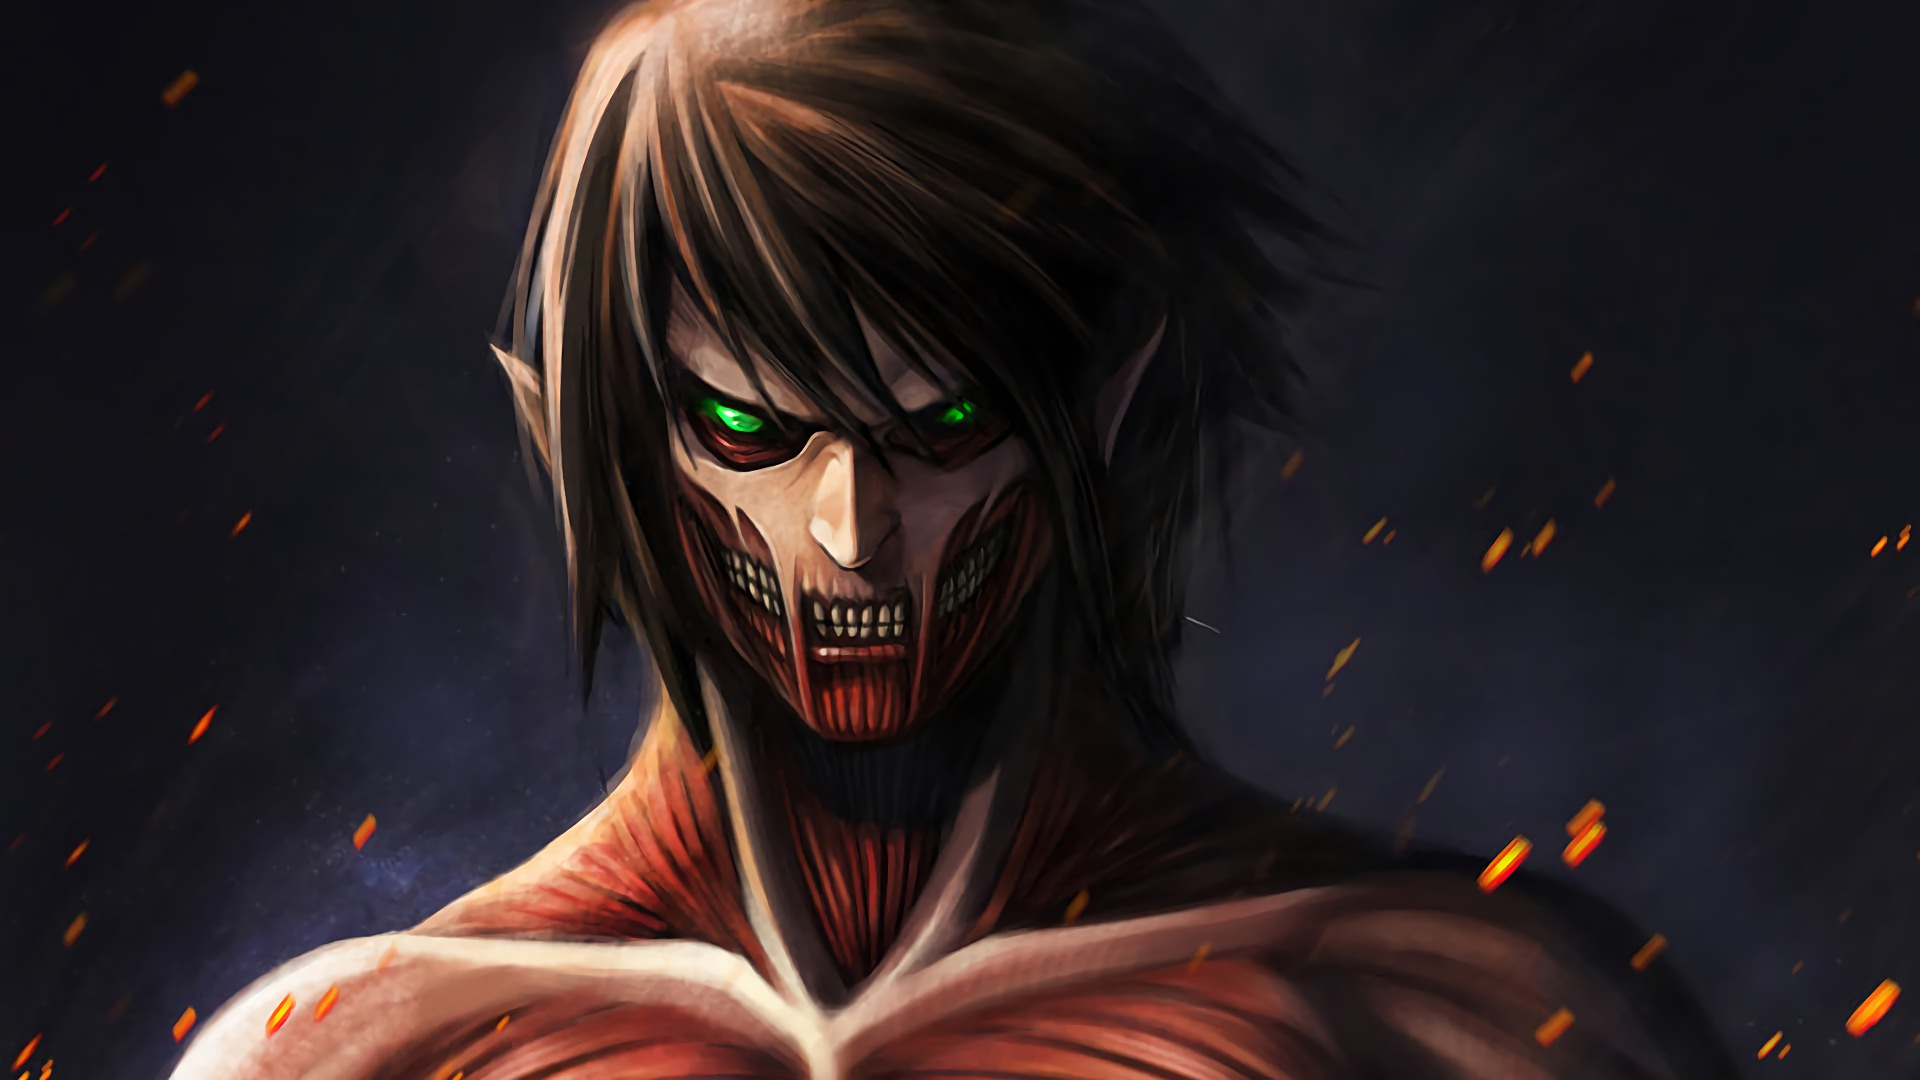 Anime Attack On Titan Wallpaper Anime Wallpapers